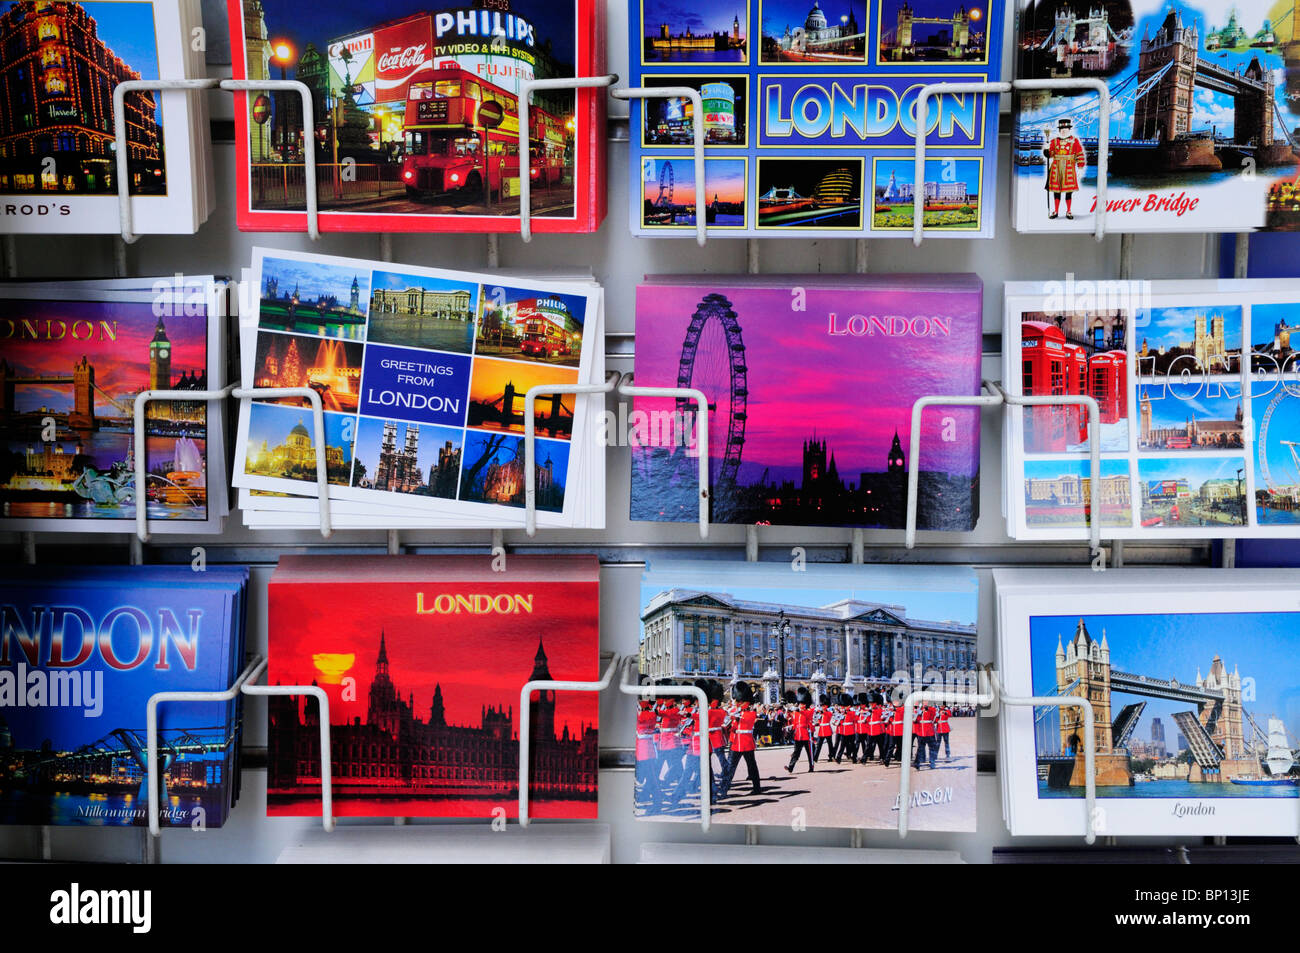 Postcards for sale, London, England, UK - Stock Image